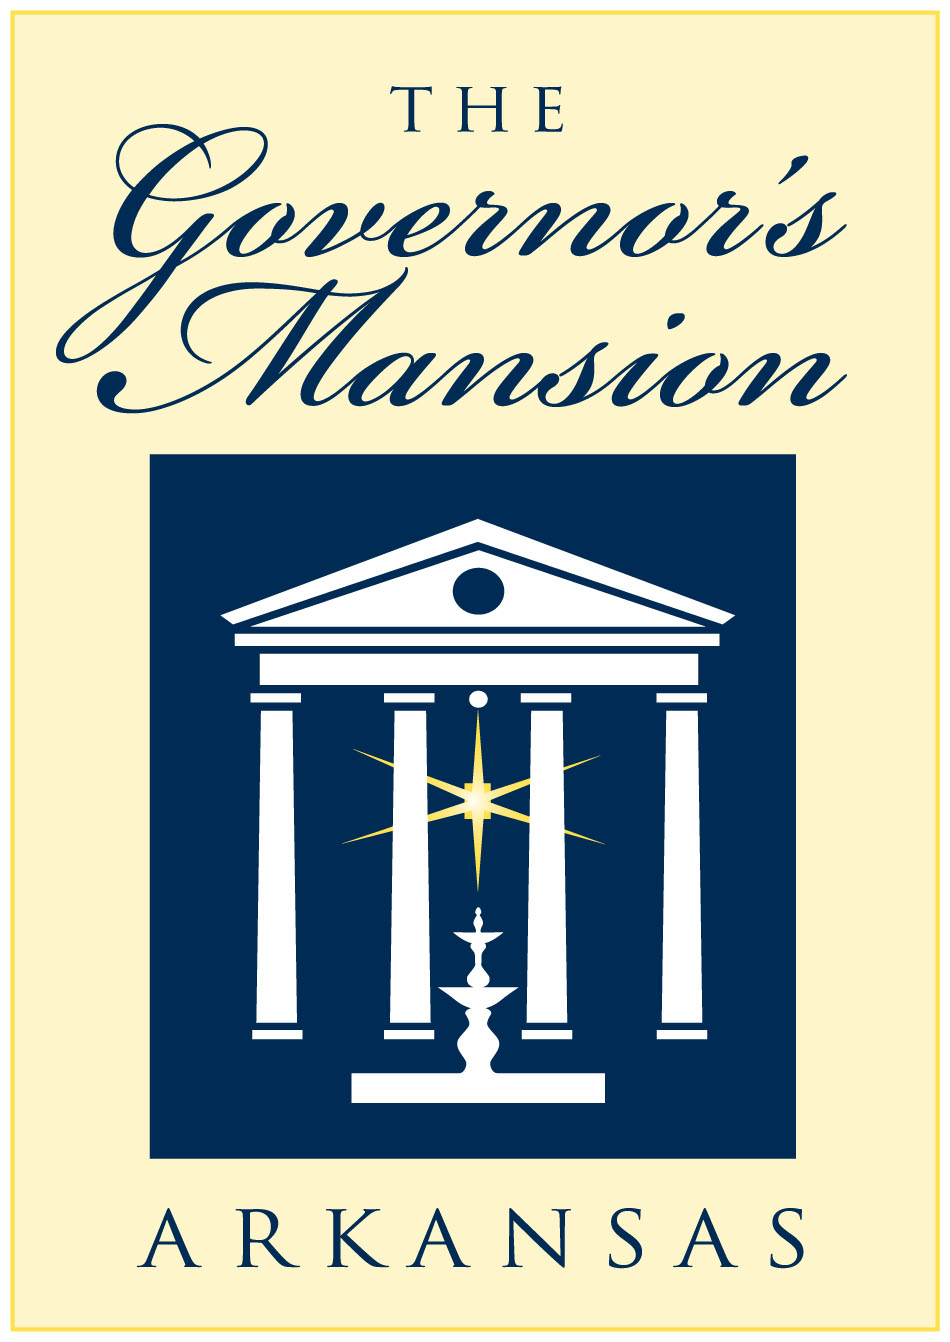 Arkansas Governor's Mansion Logo